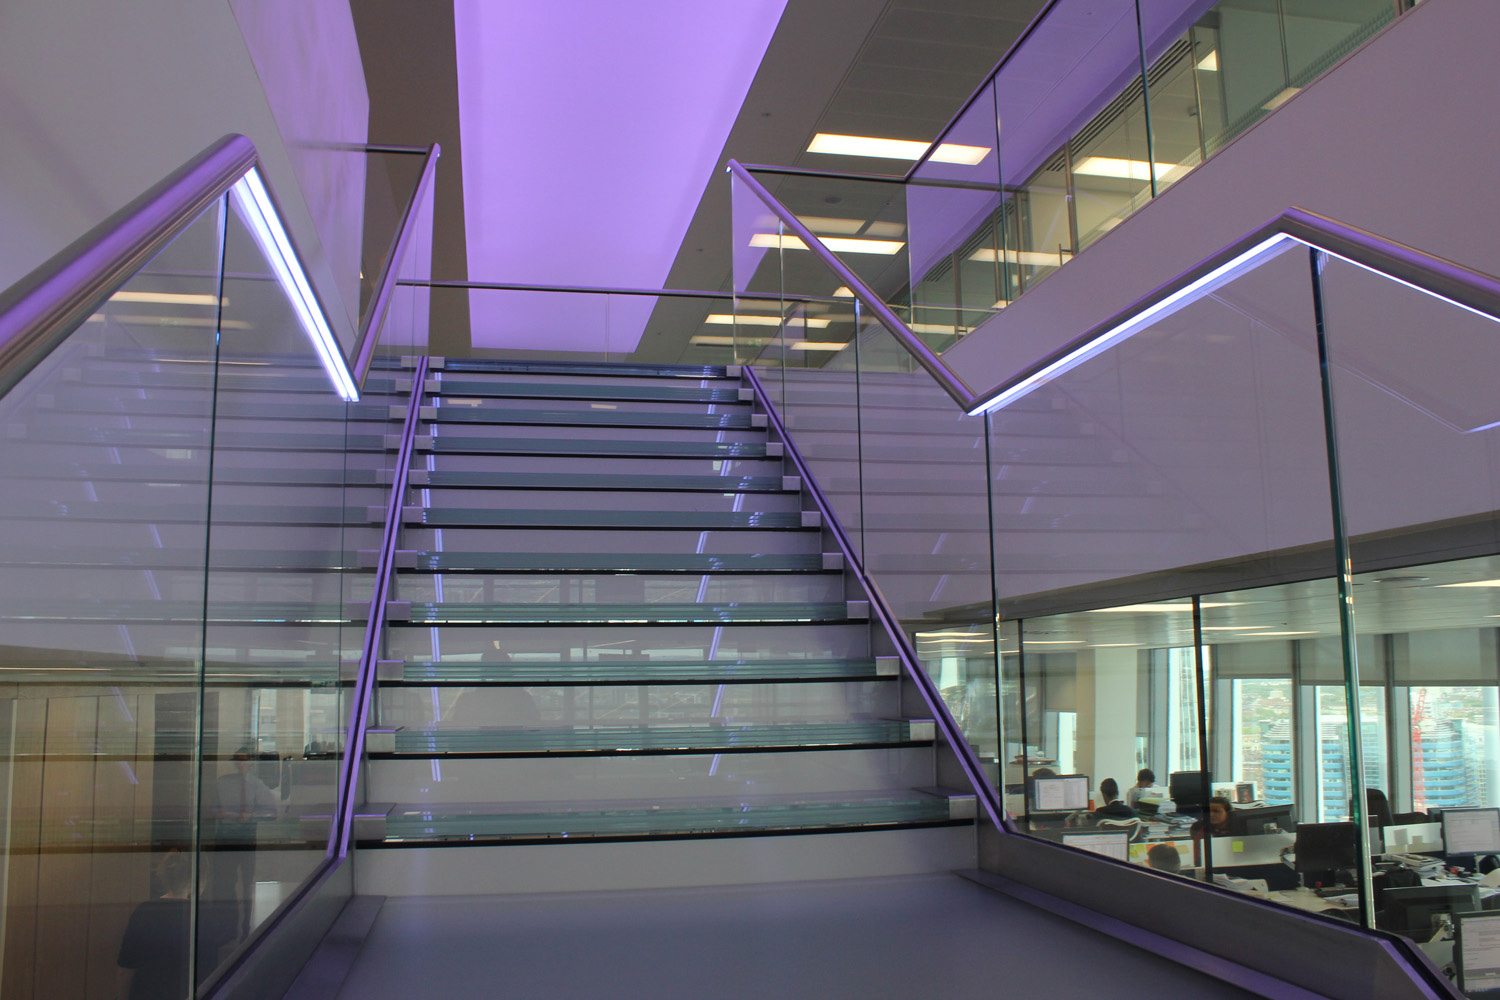 Lighting Installations | Liberty Specialist Markets | Glowrail | Light Lab